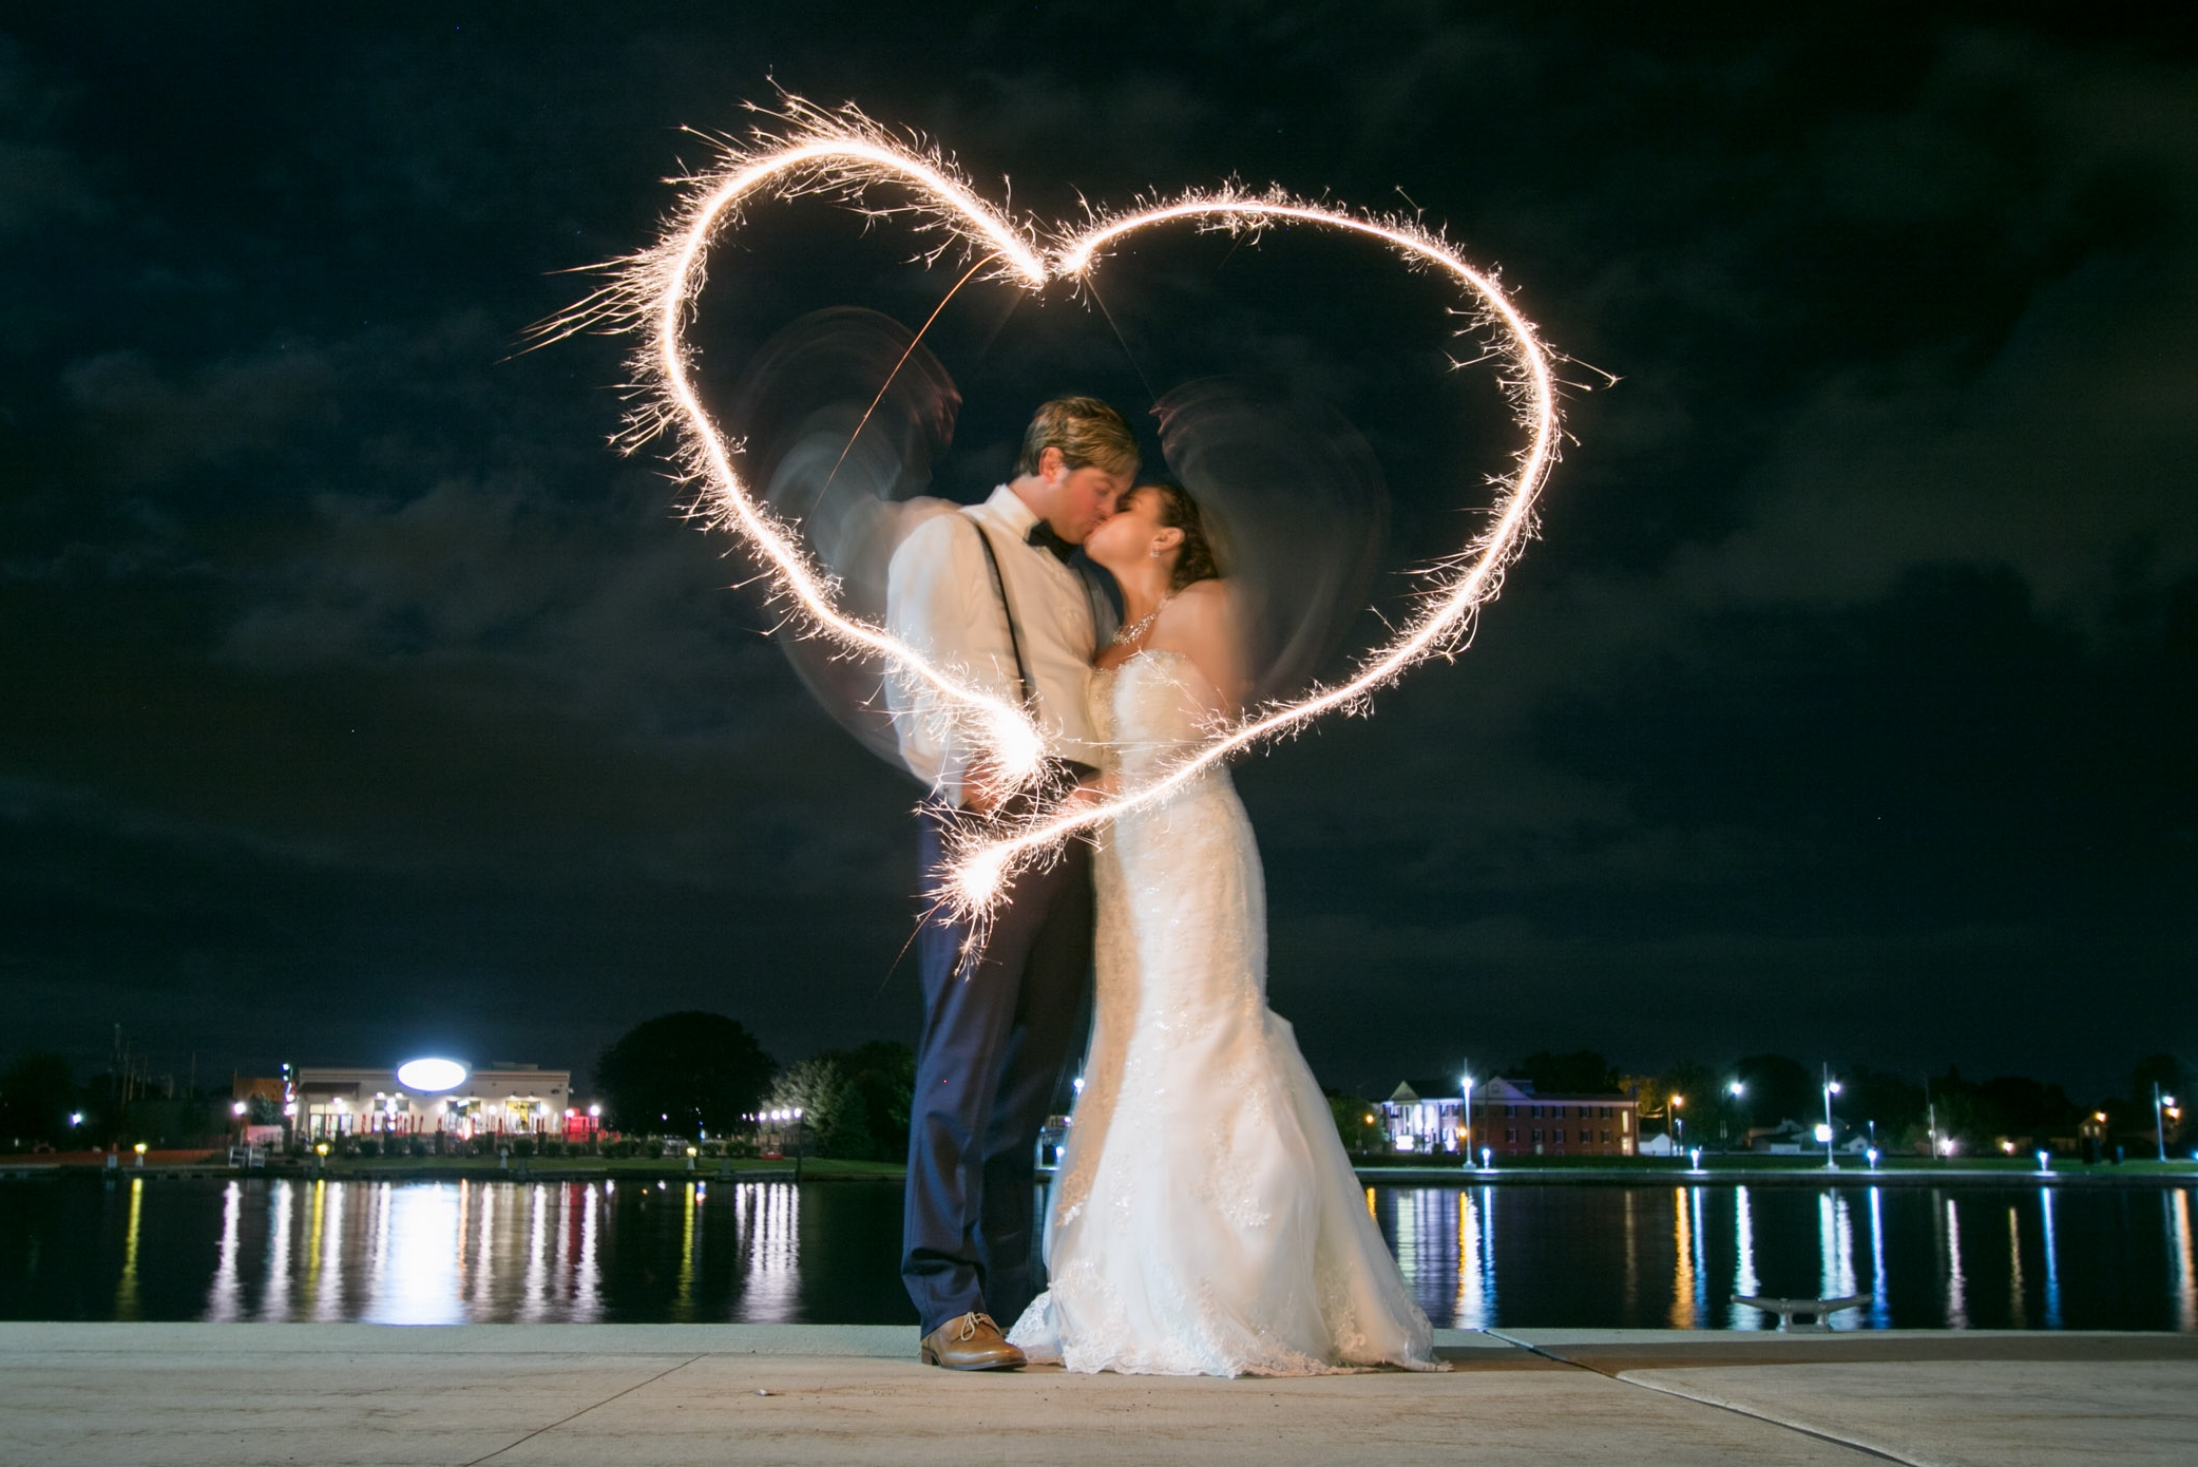 wedding-photo-long-exposure-heart-bride-groom-wedding-photographer-adam-shea-photography-green bay-appleton-neenah-oshkosh-fond-du-lac-wisconsin-photos.jpg